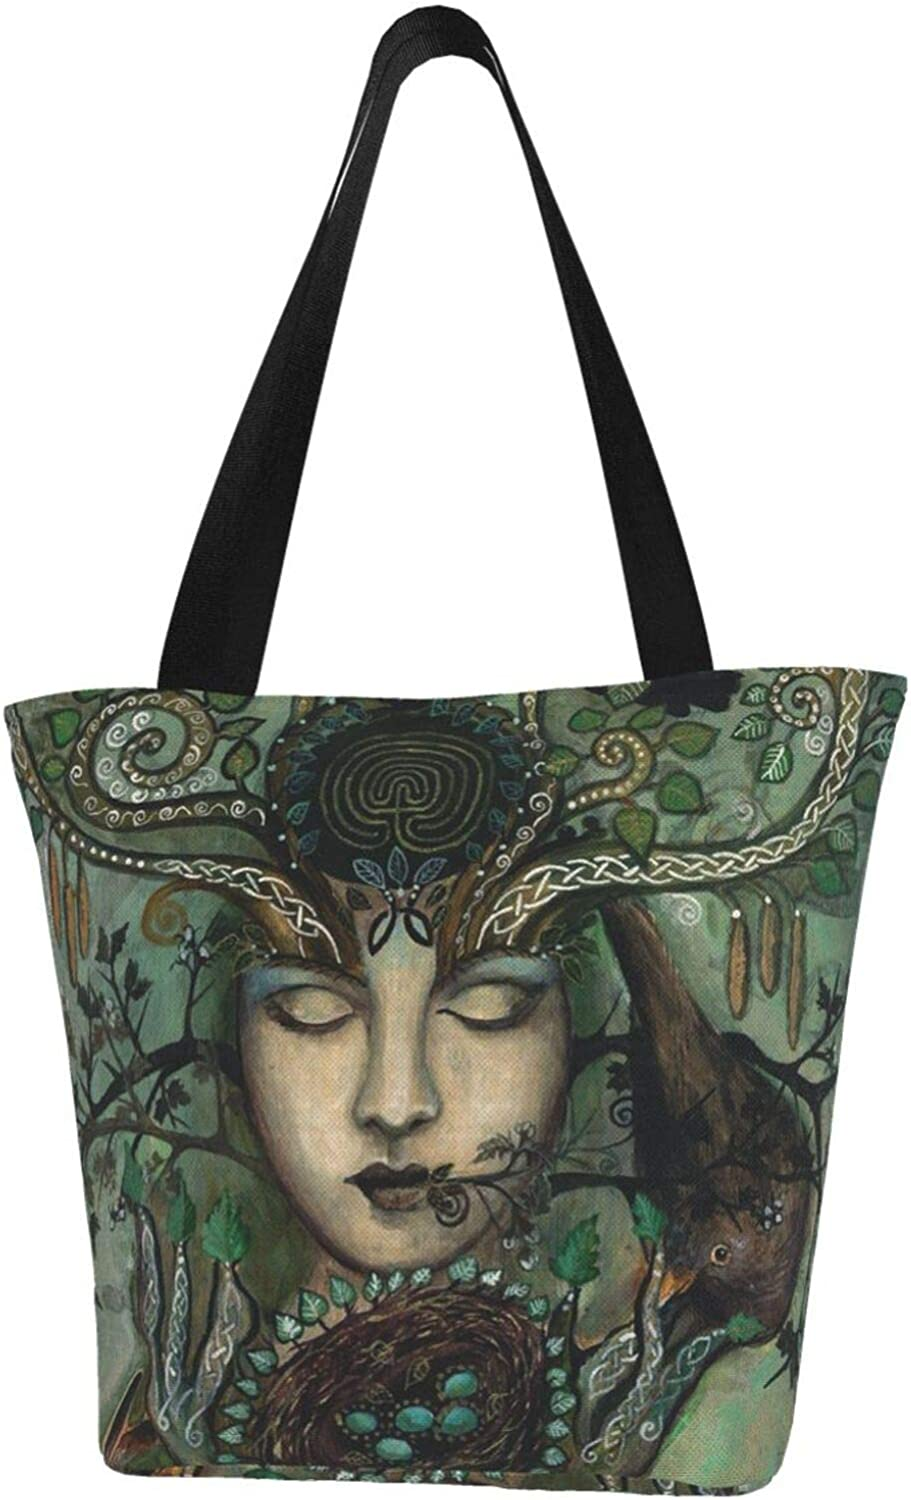 Goddess Wicca Wiccan Rabbit Crow Themed Printed Women Canvas Handbag Zipper Shoulder Bag Work Booksbag Tote Purse Leisure Hobo Bag For Shopping